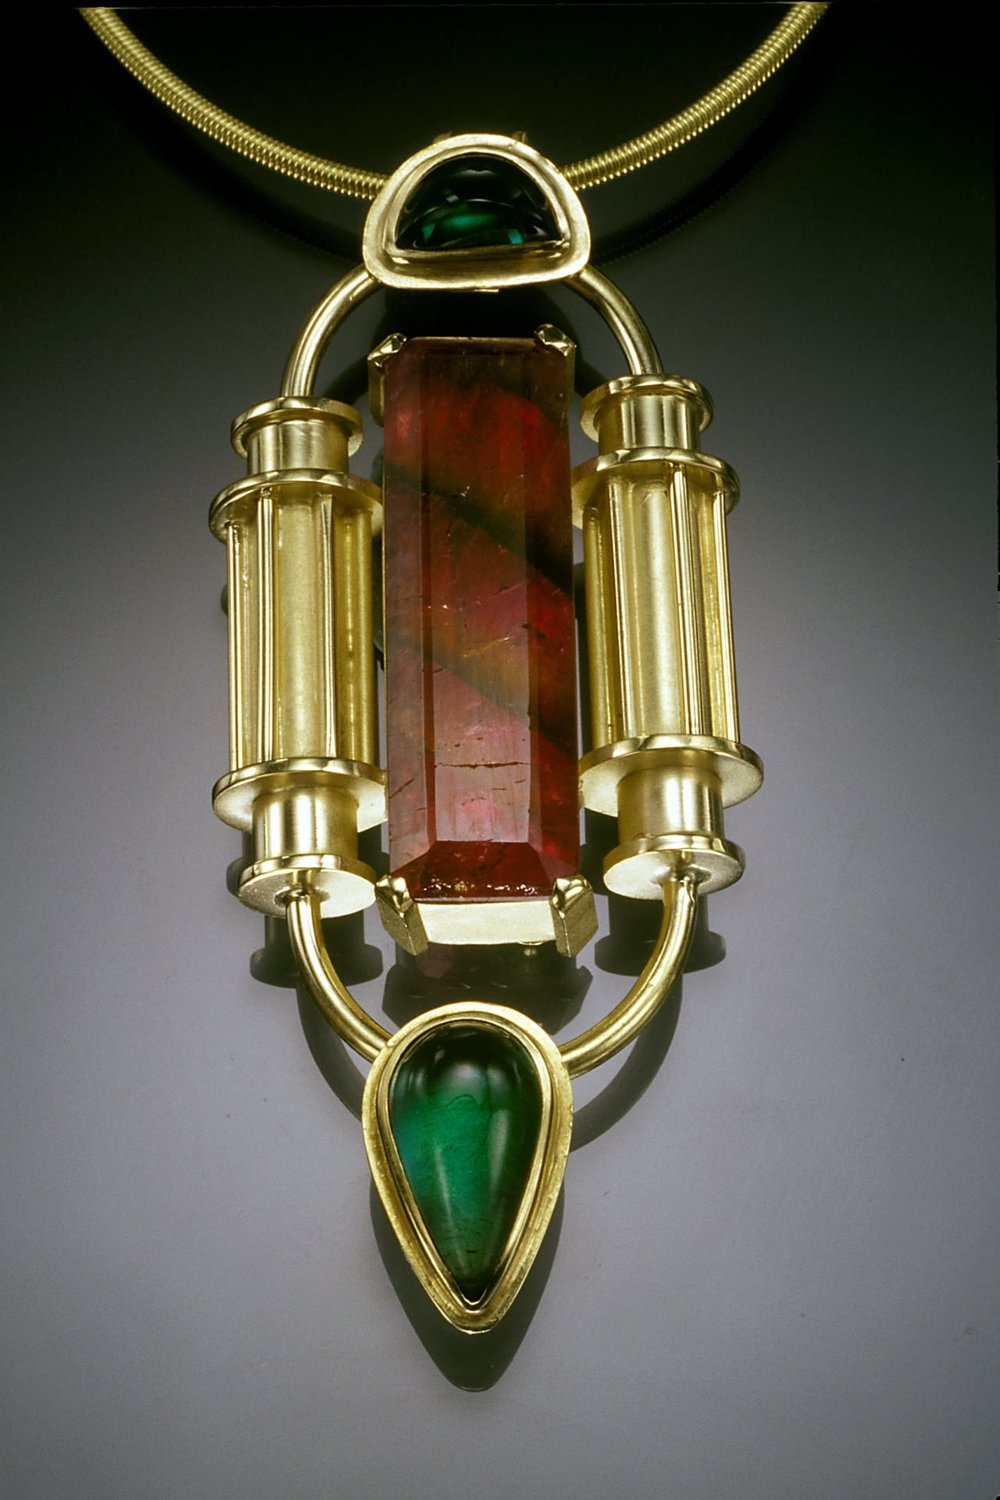 2 tourmaline pin pendant, as penpant.jpg